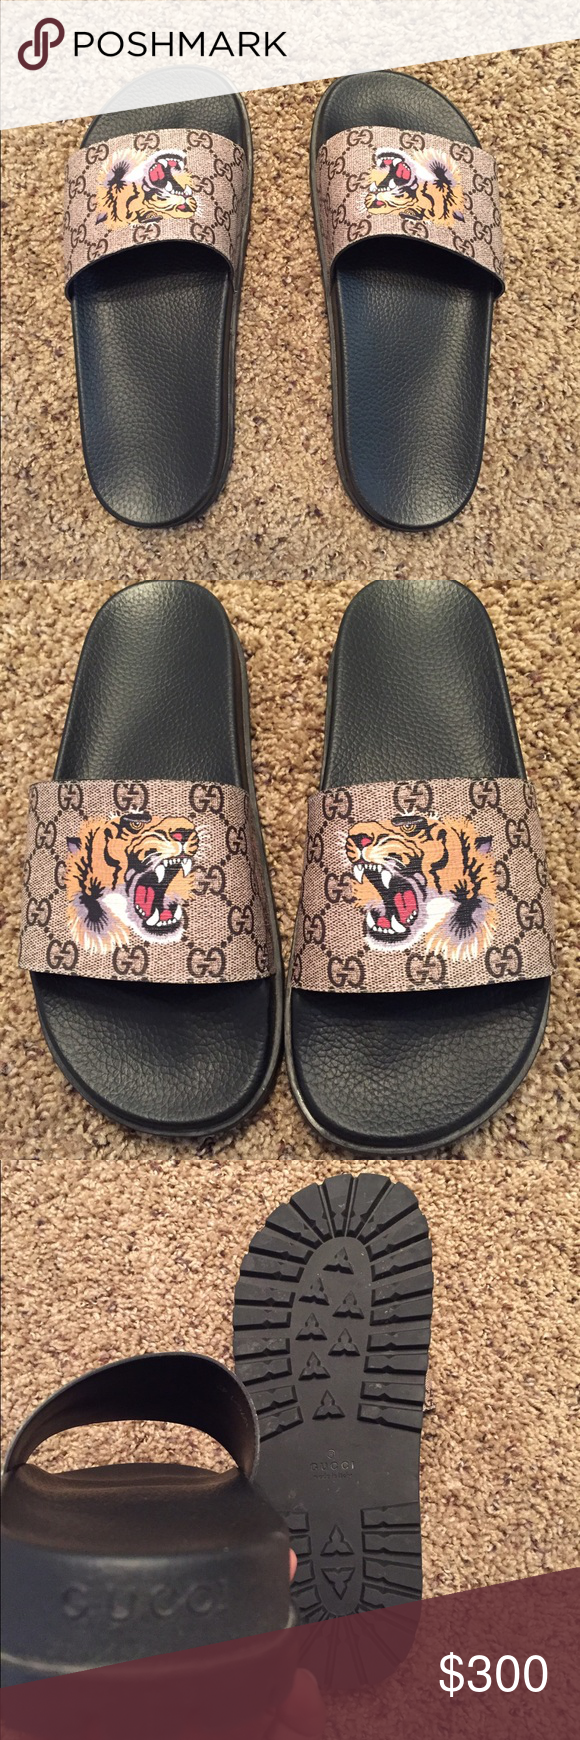 15f91427d491 Gucci Tiger slides Size 9 Slightly used. Worn a few times. Great condition.  9 out of 10. Comes with dust bag Gucci Shoes Sandals   Flip-Flops